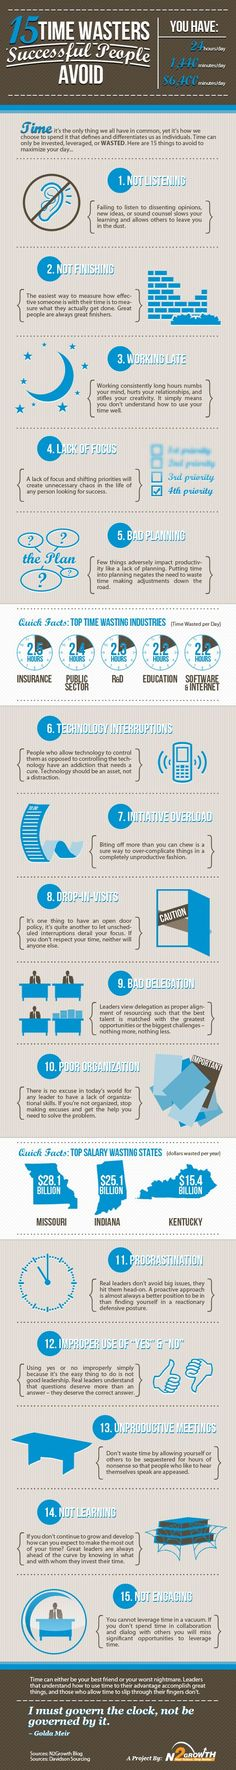 How Much Time Do You Waste 15 Time Wasters Successful People Avoid